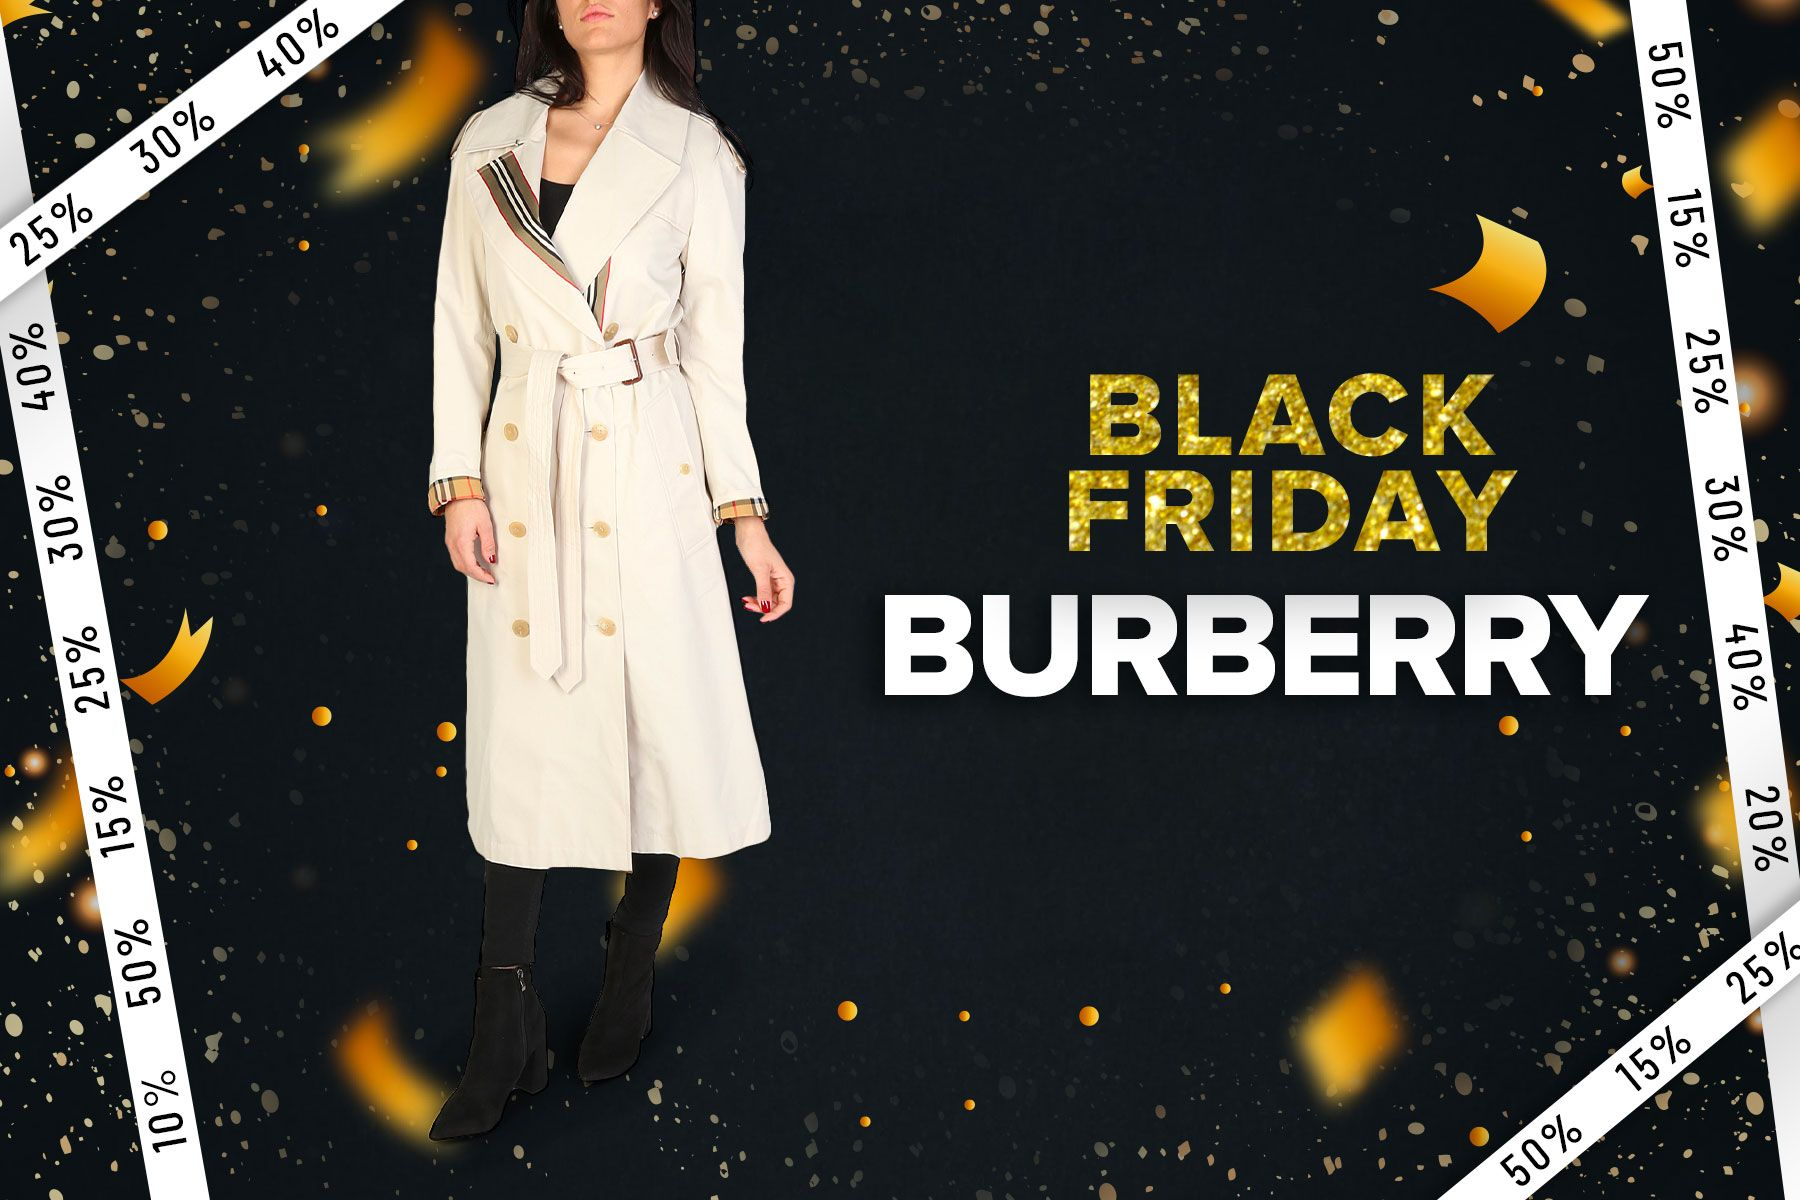 Burberry Black Friday 2020